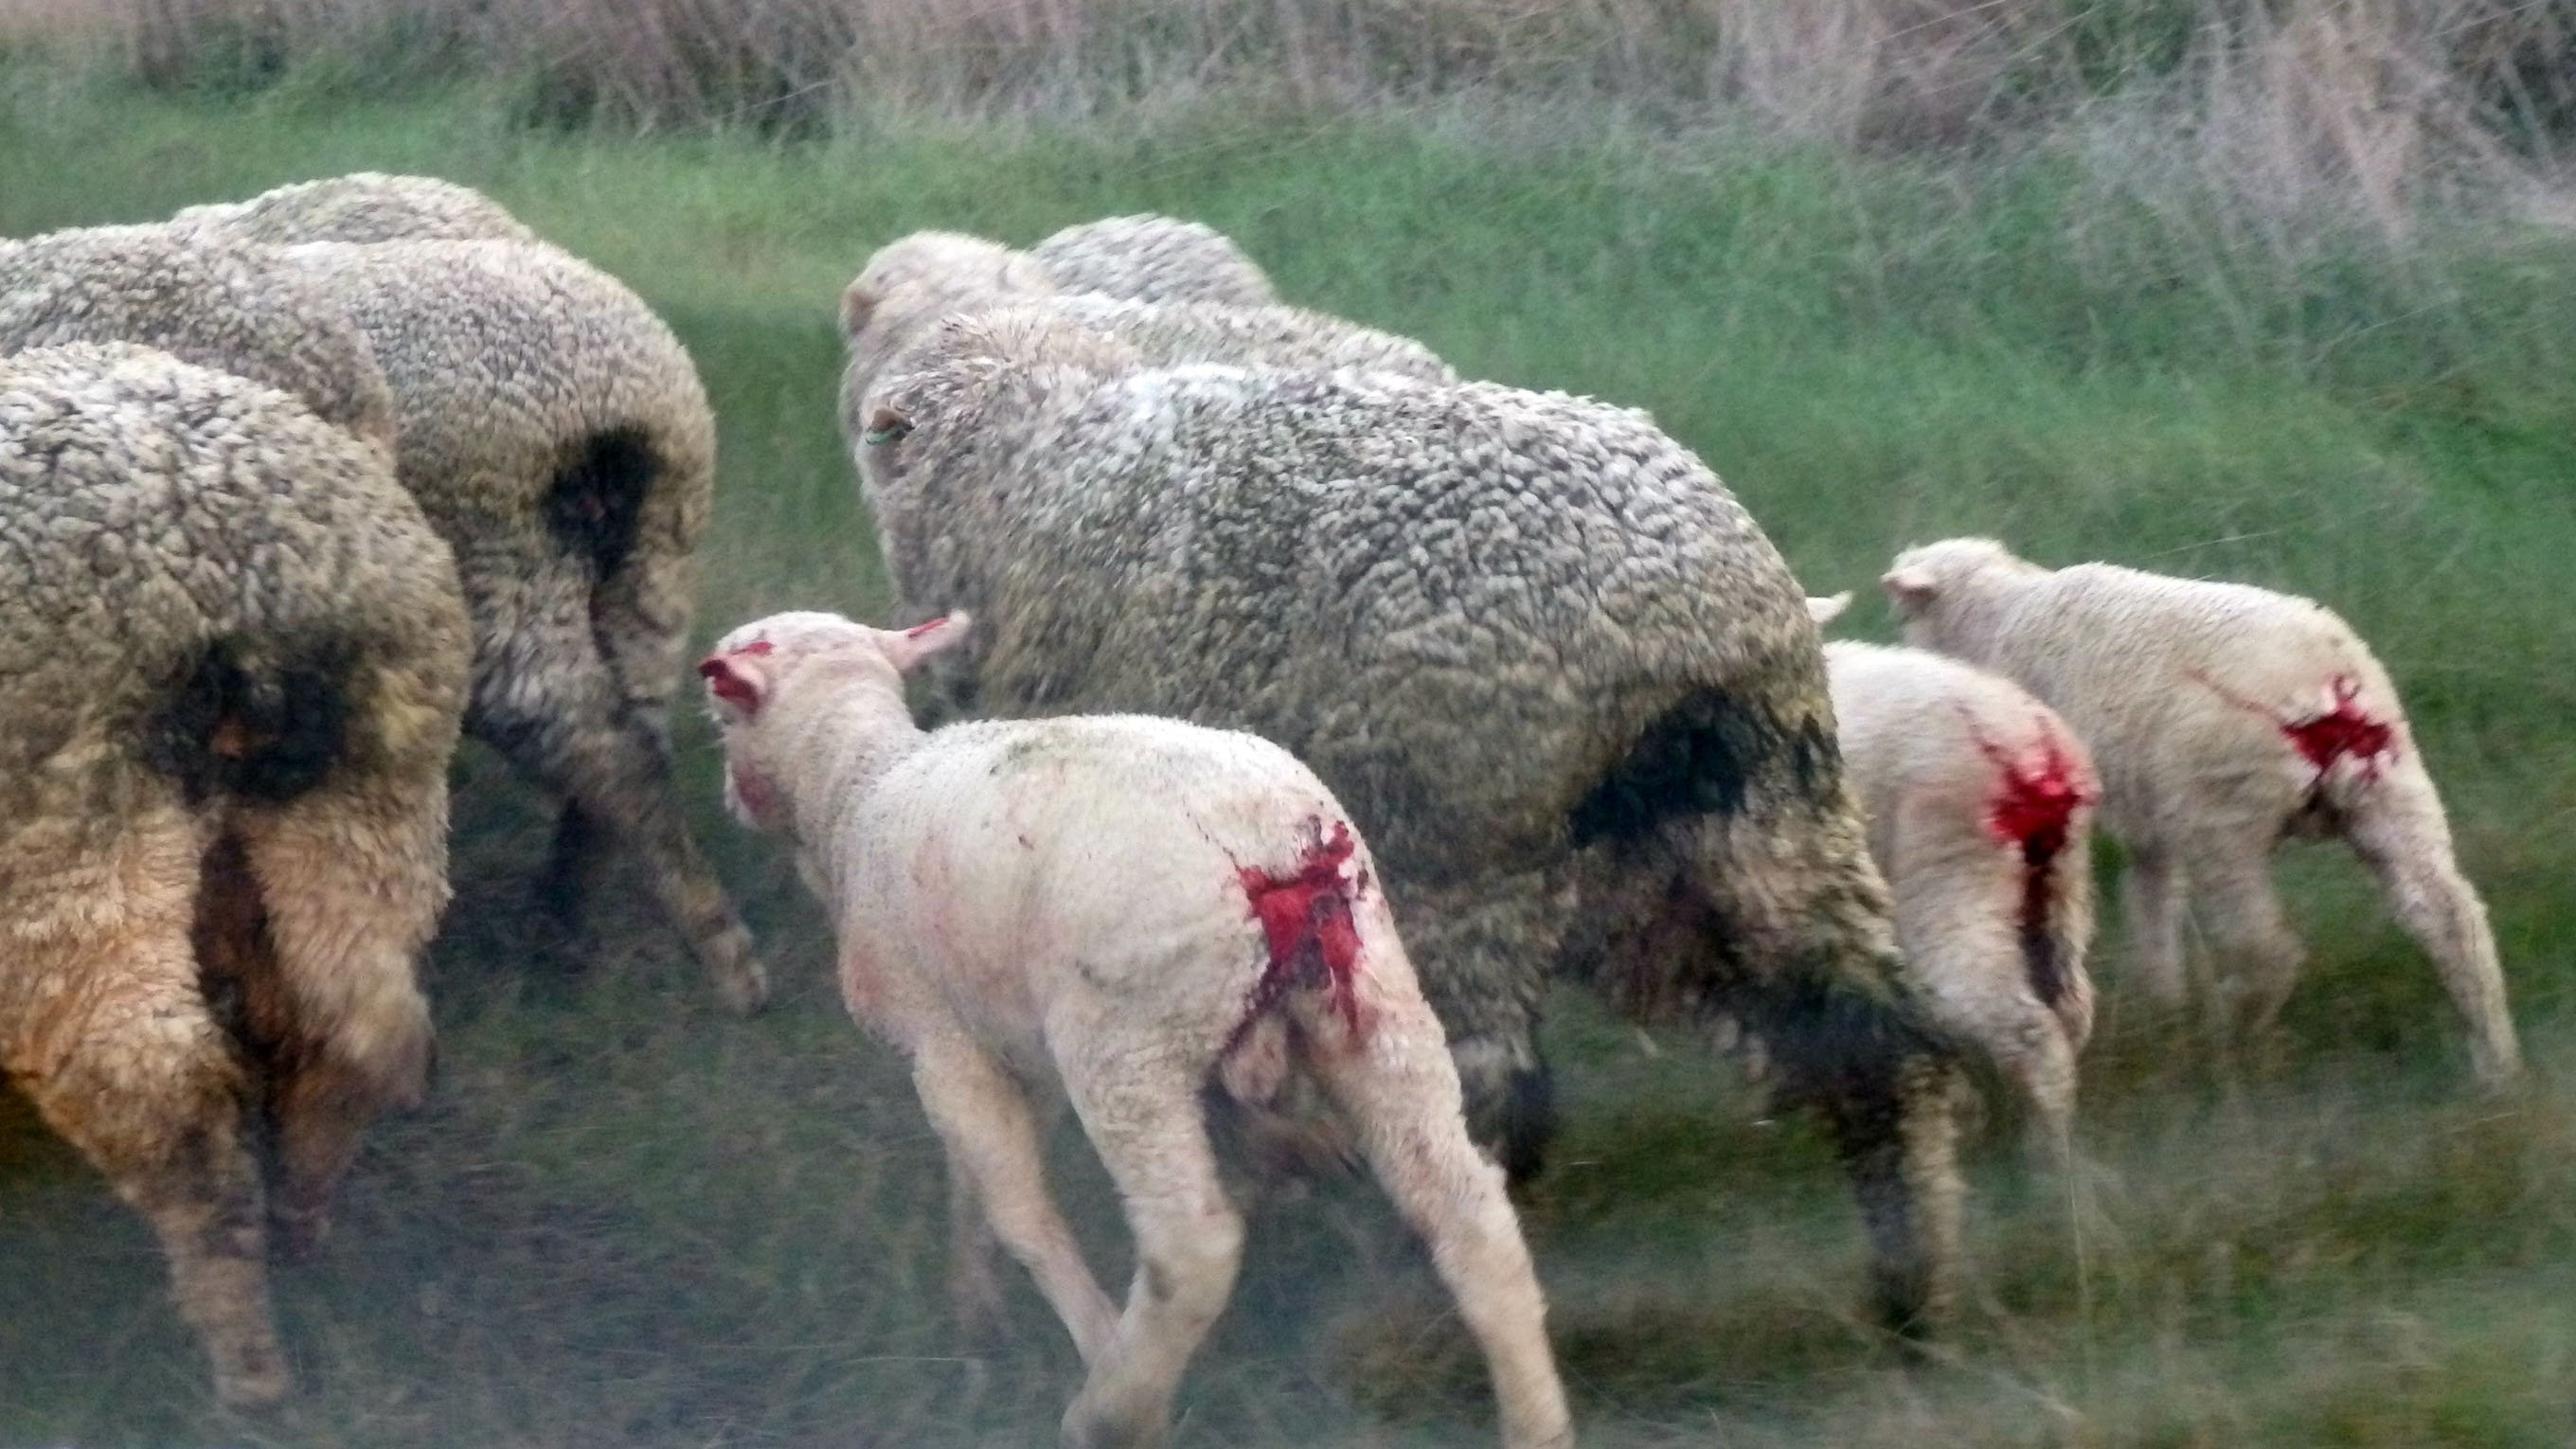 exposed sheer misery for sheep people for the ethical treatment